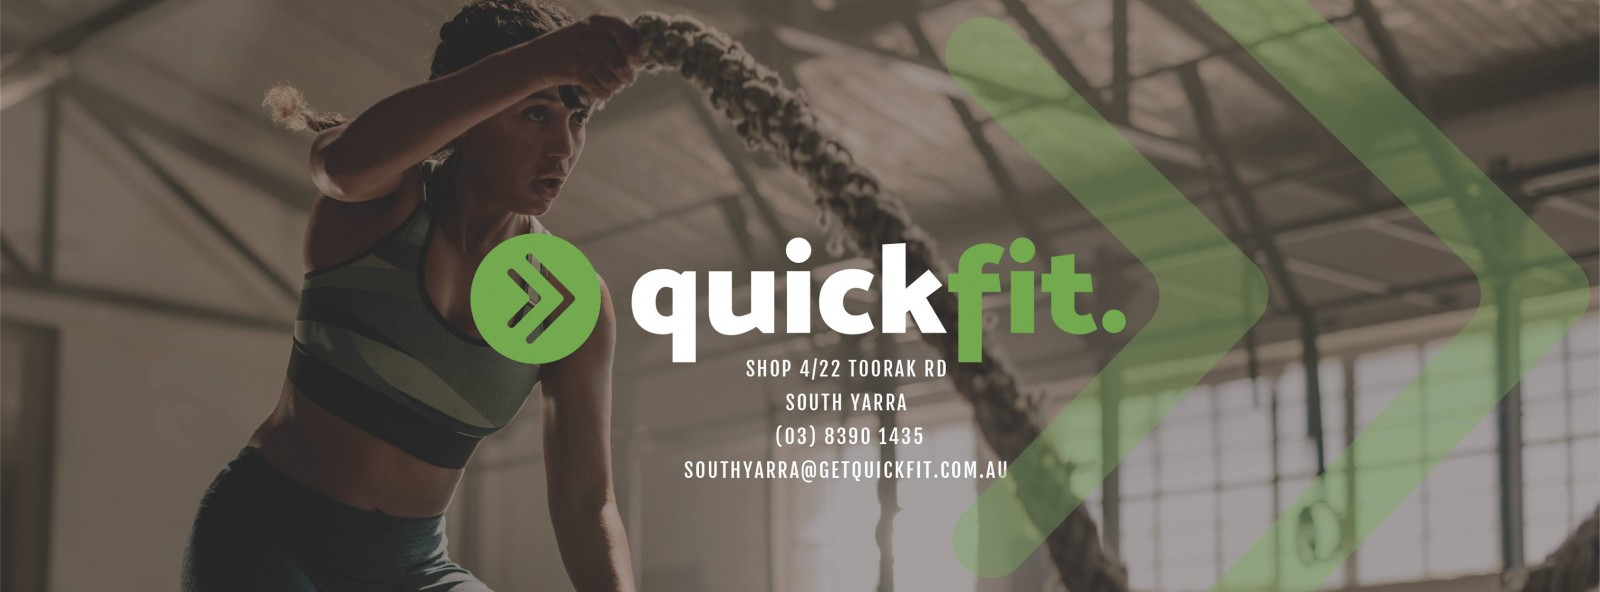 Quickfit - South Yarra